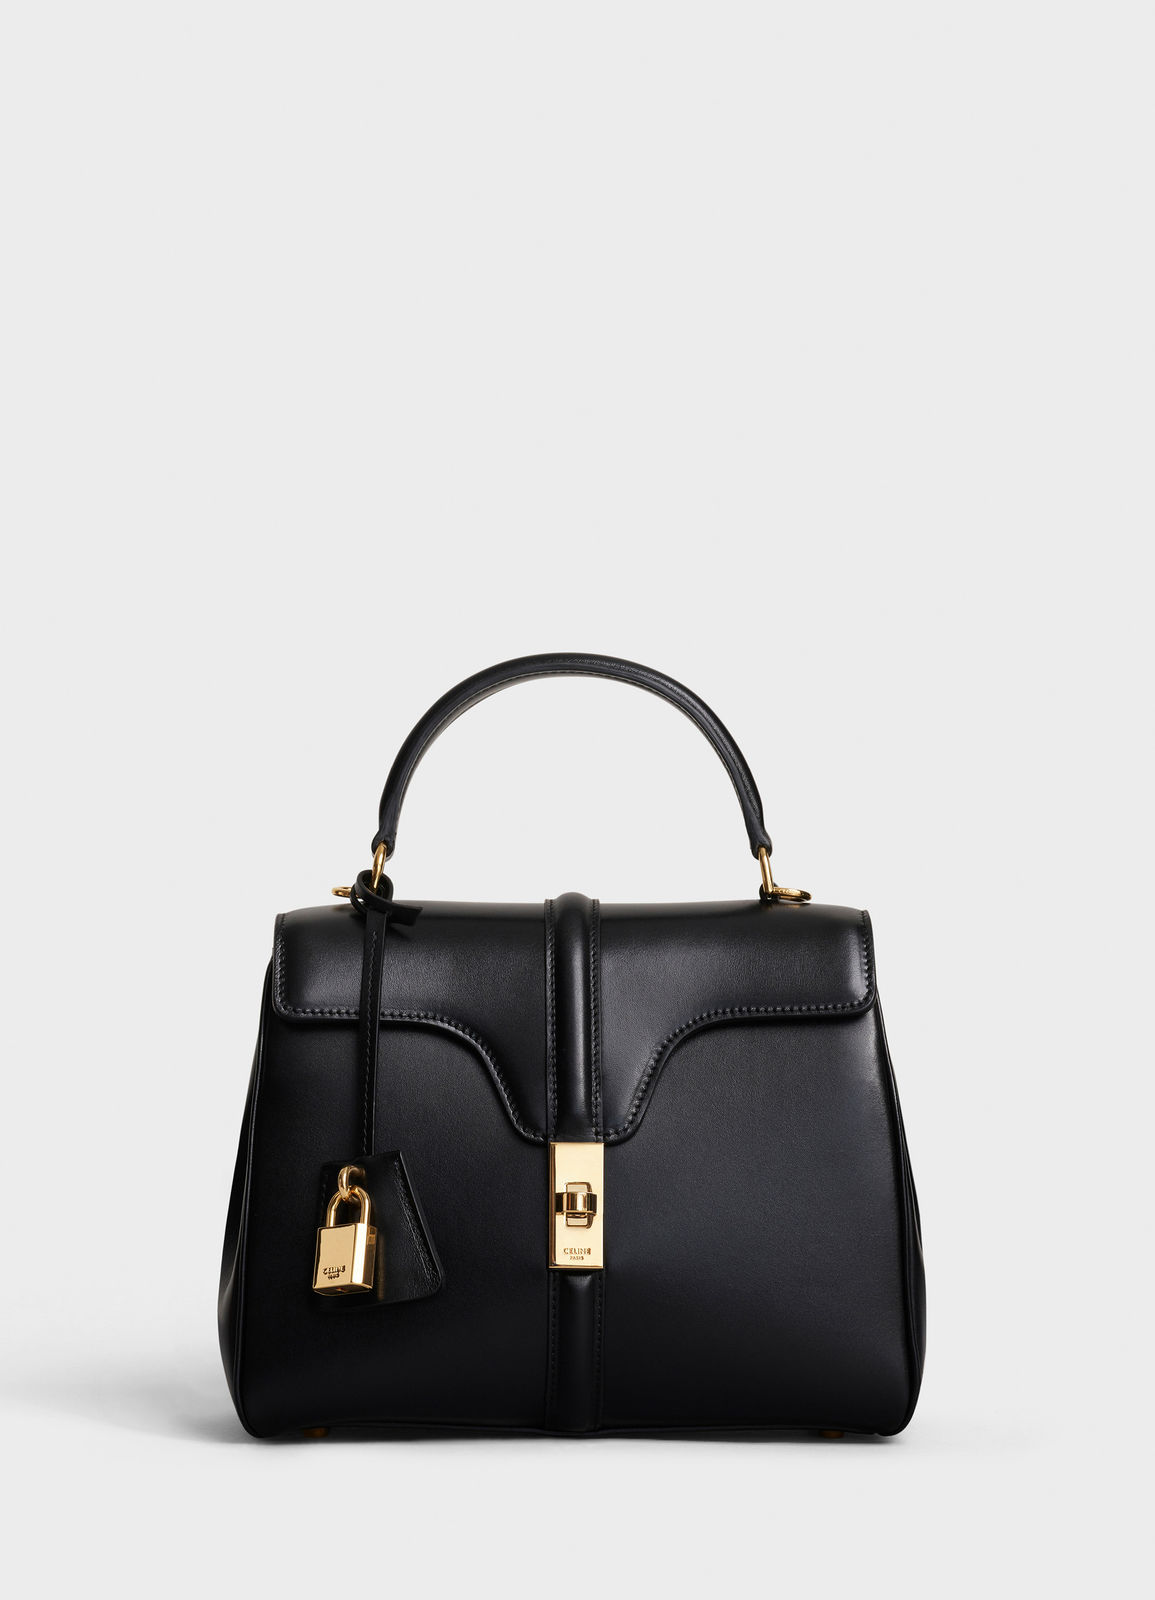 CELINE SMALL 16 BAG IN SATINATED CALFSKIN A188003 black